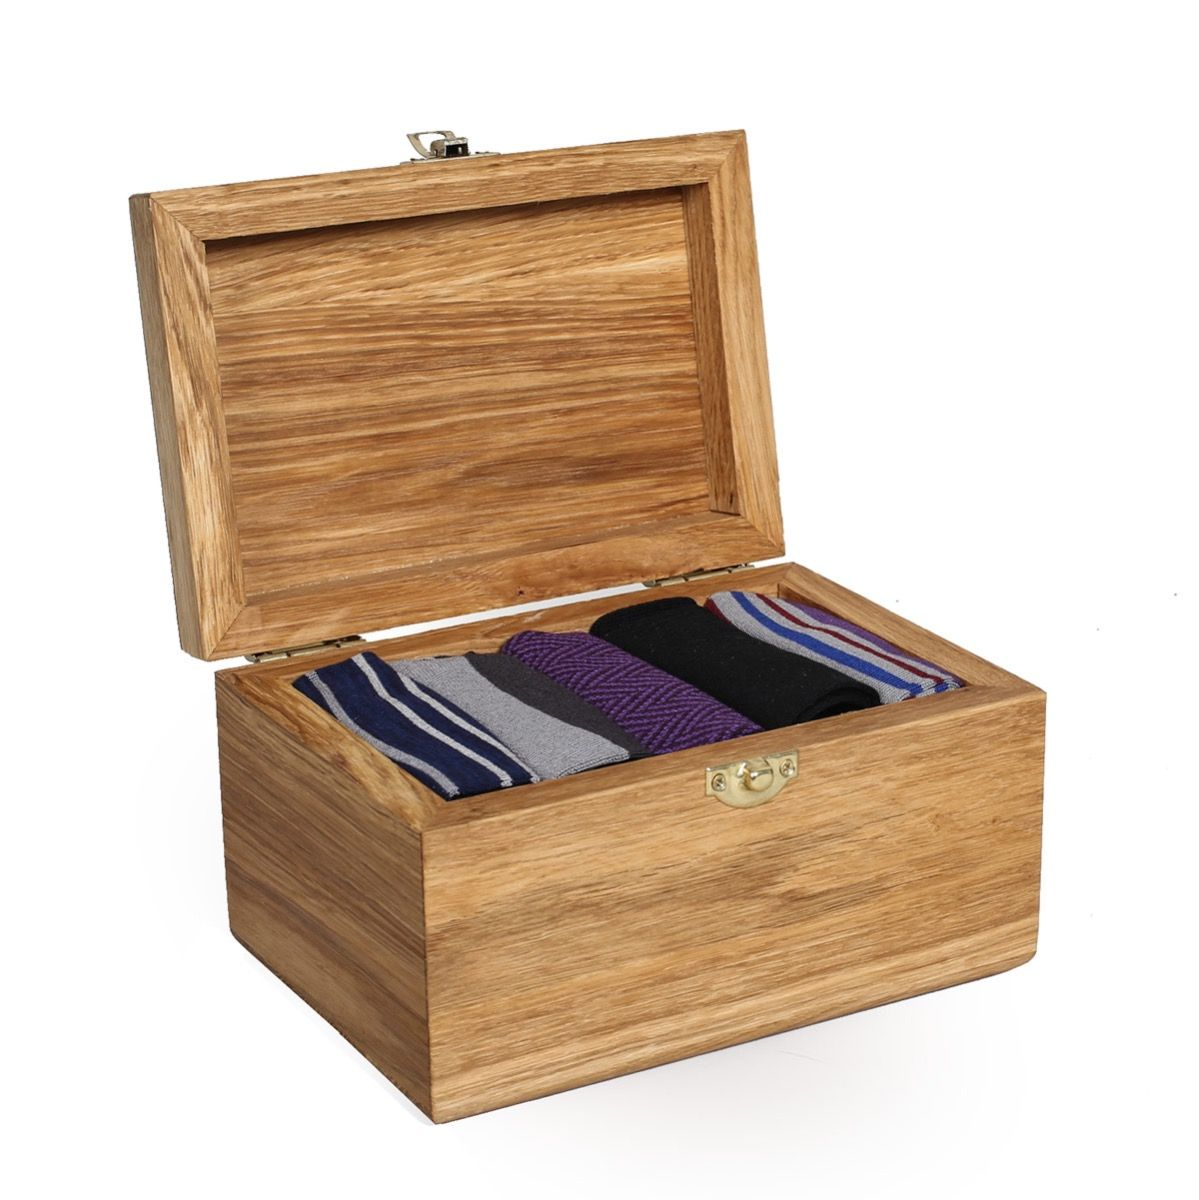 Oliver Sweeney Solid Oak Sock Box - Luxury Wooden Socks Box Filled with 5 Pairs of Socks